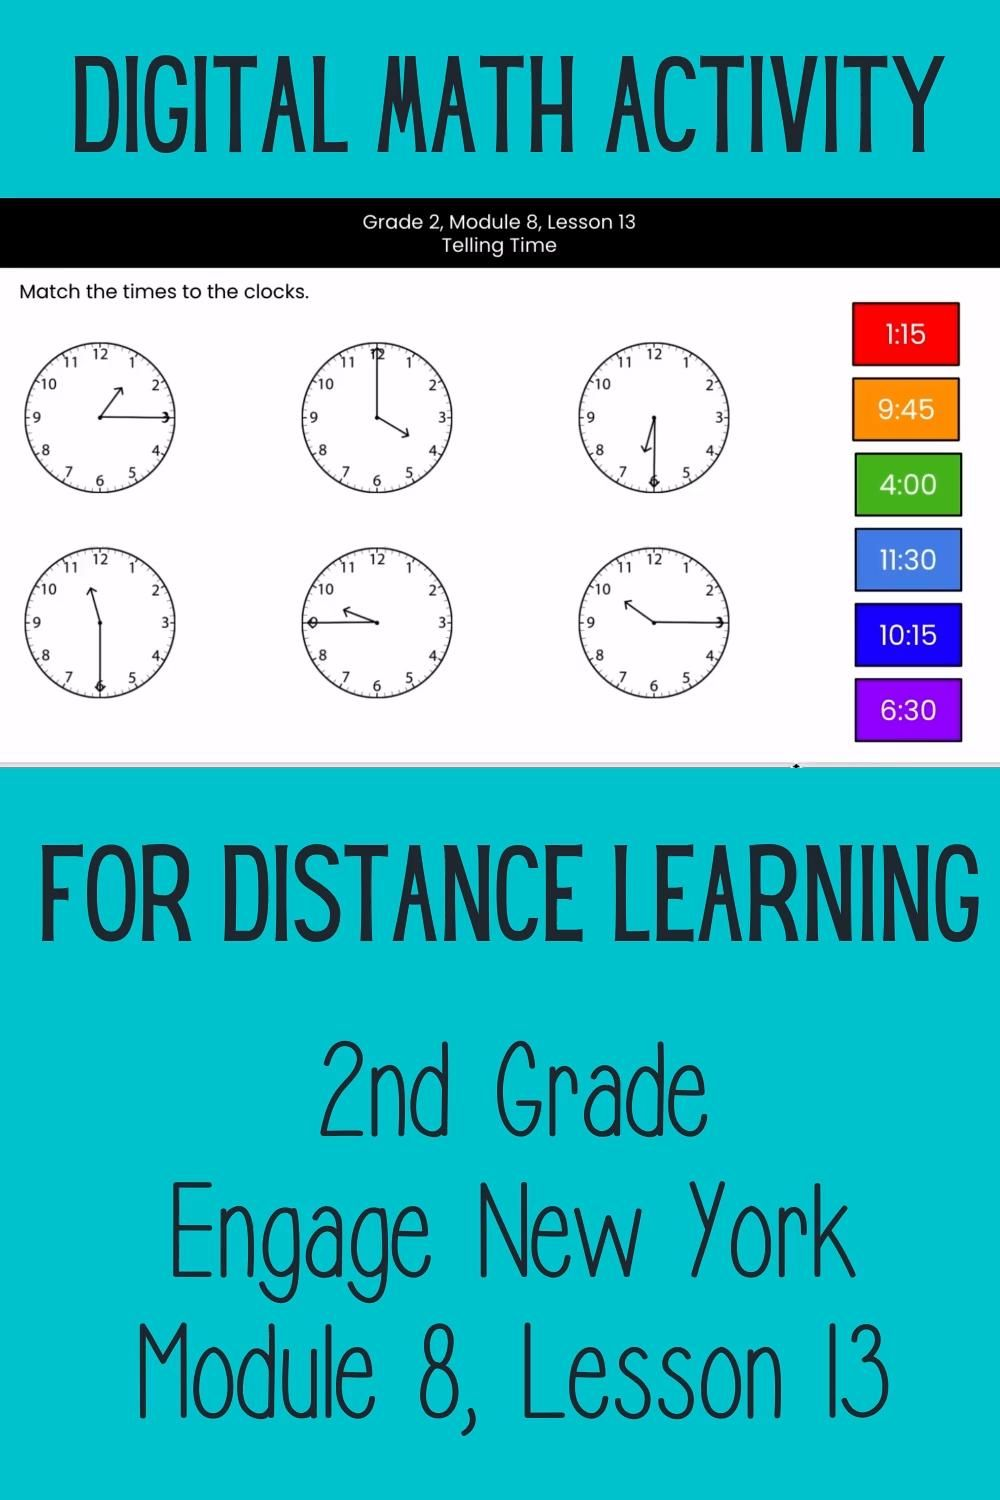 2nd Grade Engage New York Math Grade 2 Module 8 Lesson 13 Aligned Digital Math Activity Video In 2021 Online Teaching Resources Sign Language For Kids Sped Teacher [ 1500 x 1000 Pixel ]